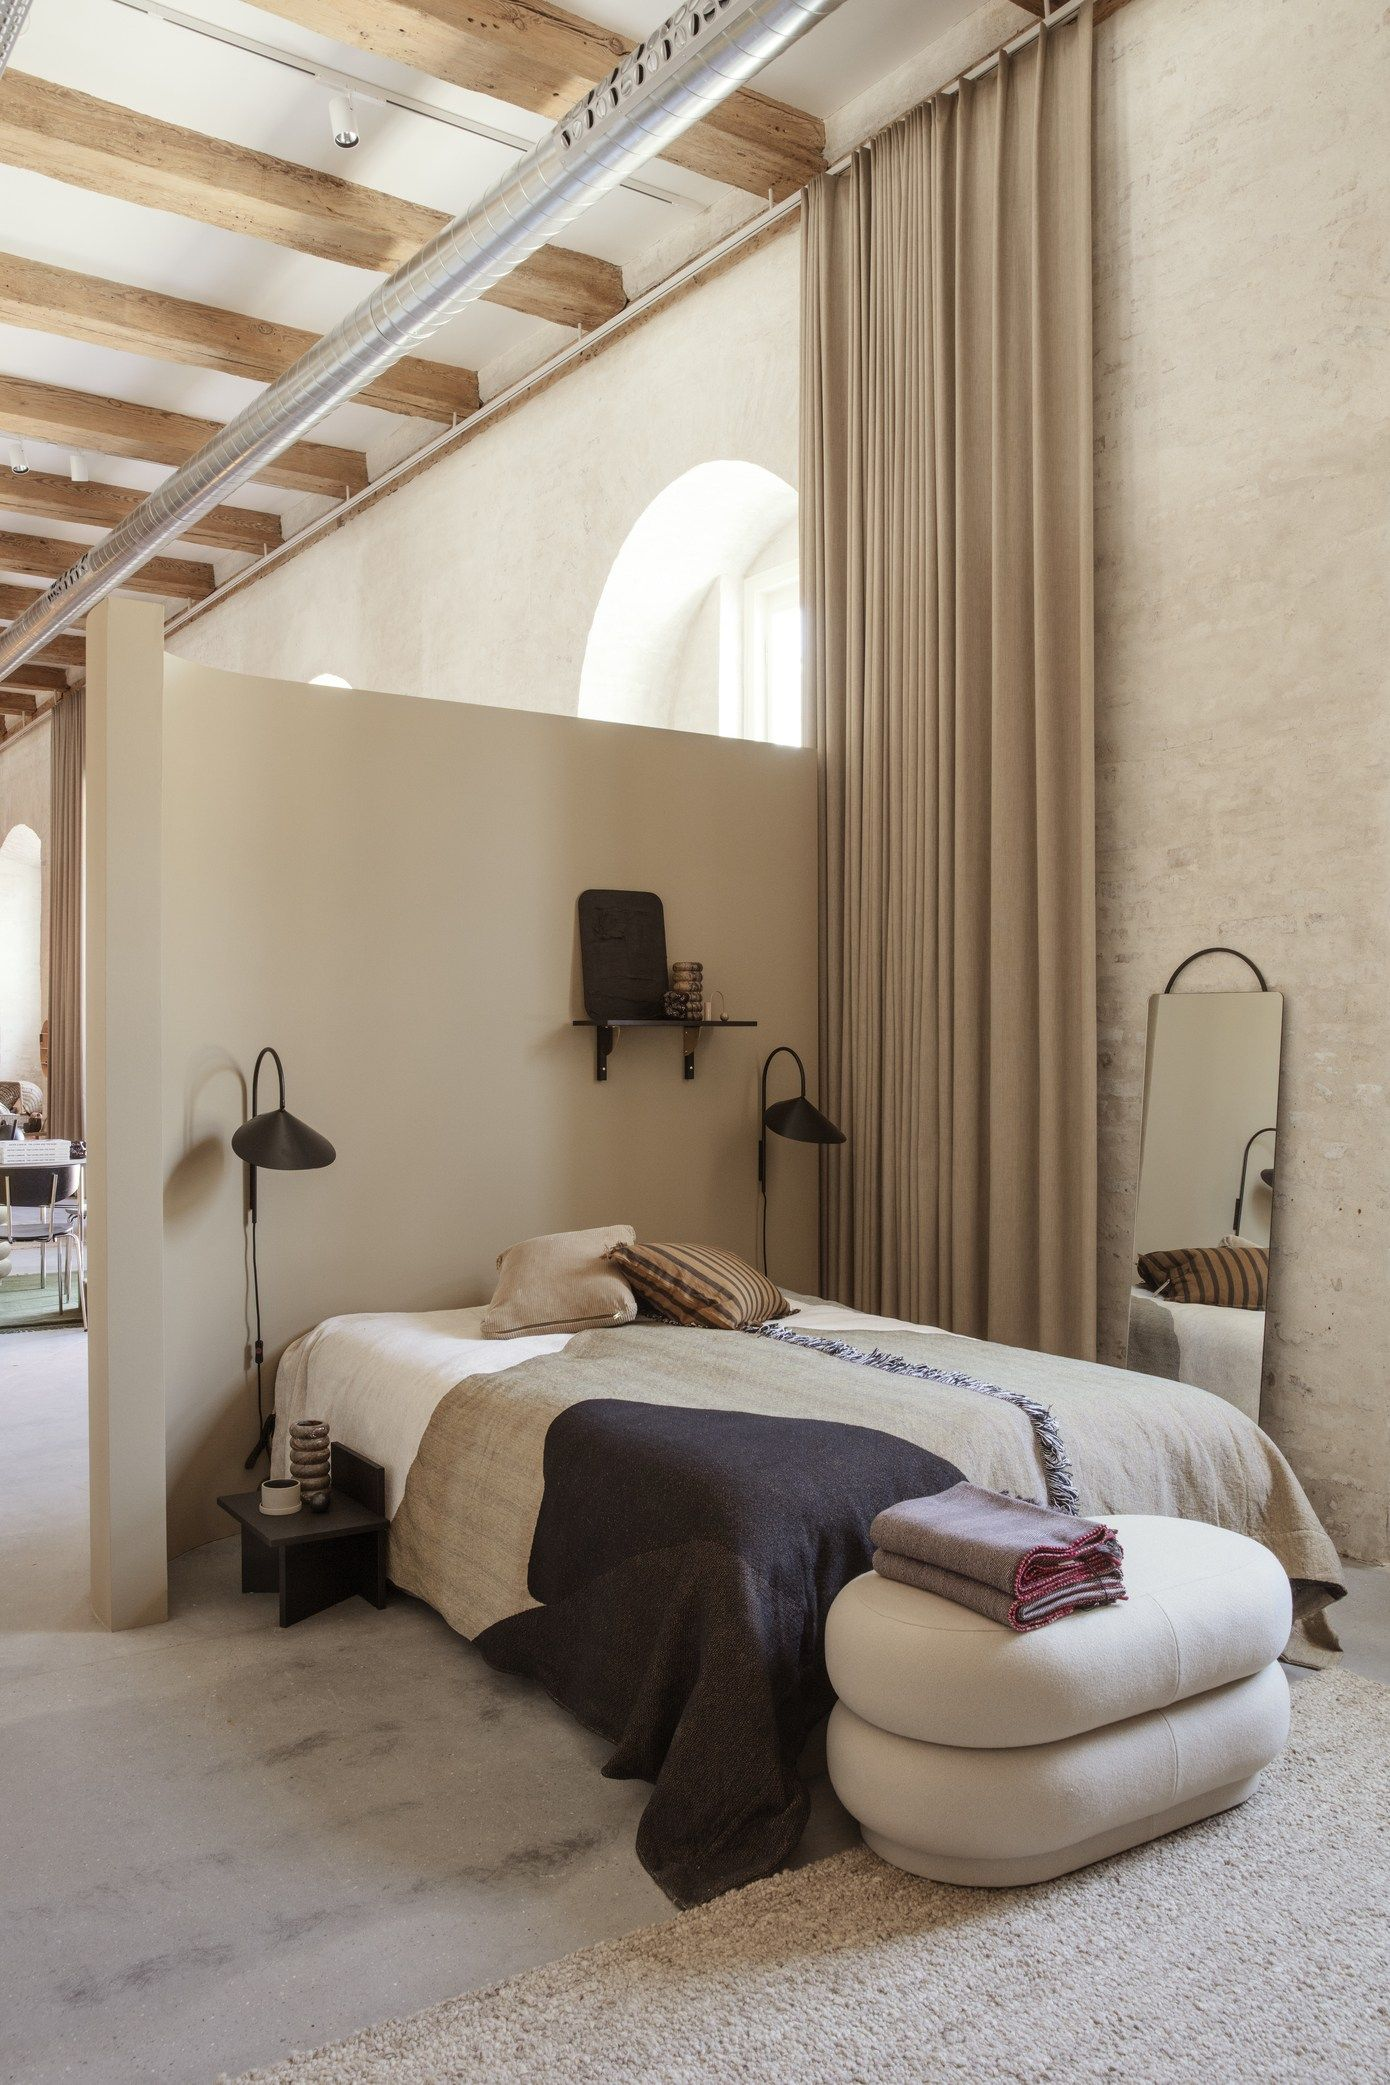 The New Home Of Ferm Living Coco Lapine Design Loft Spaces Minimalist Bedroom Bedroom Trends